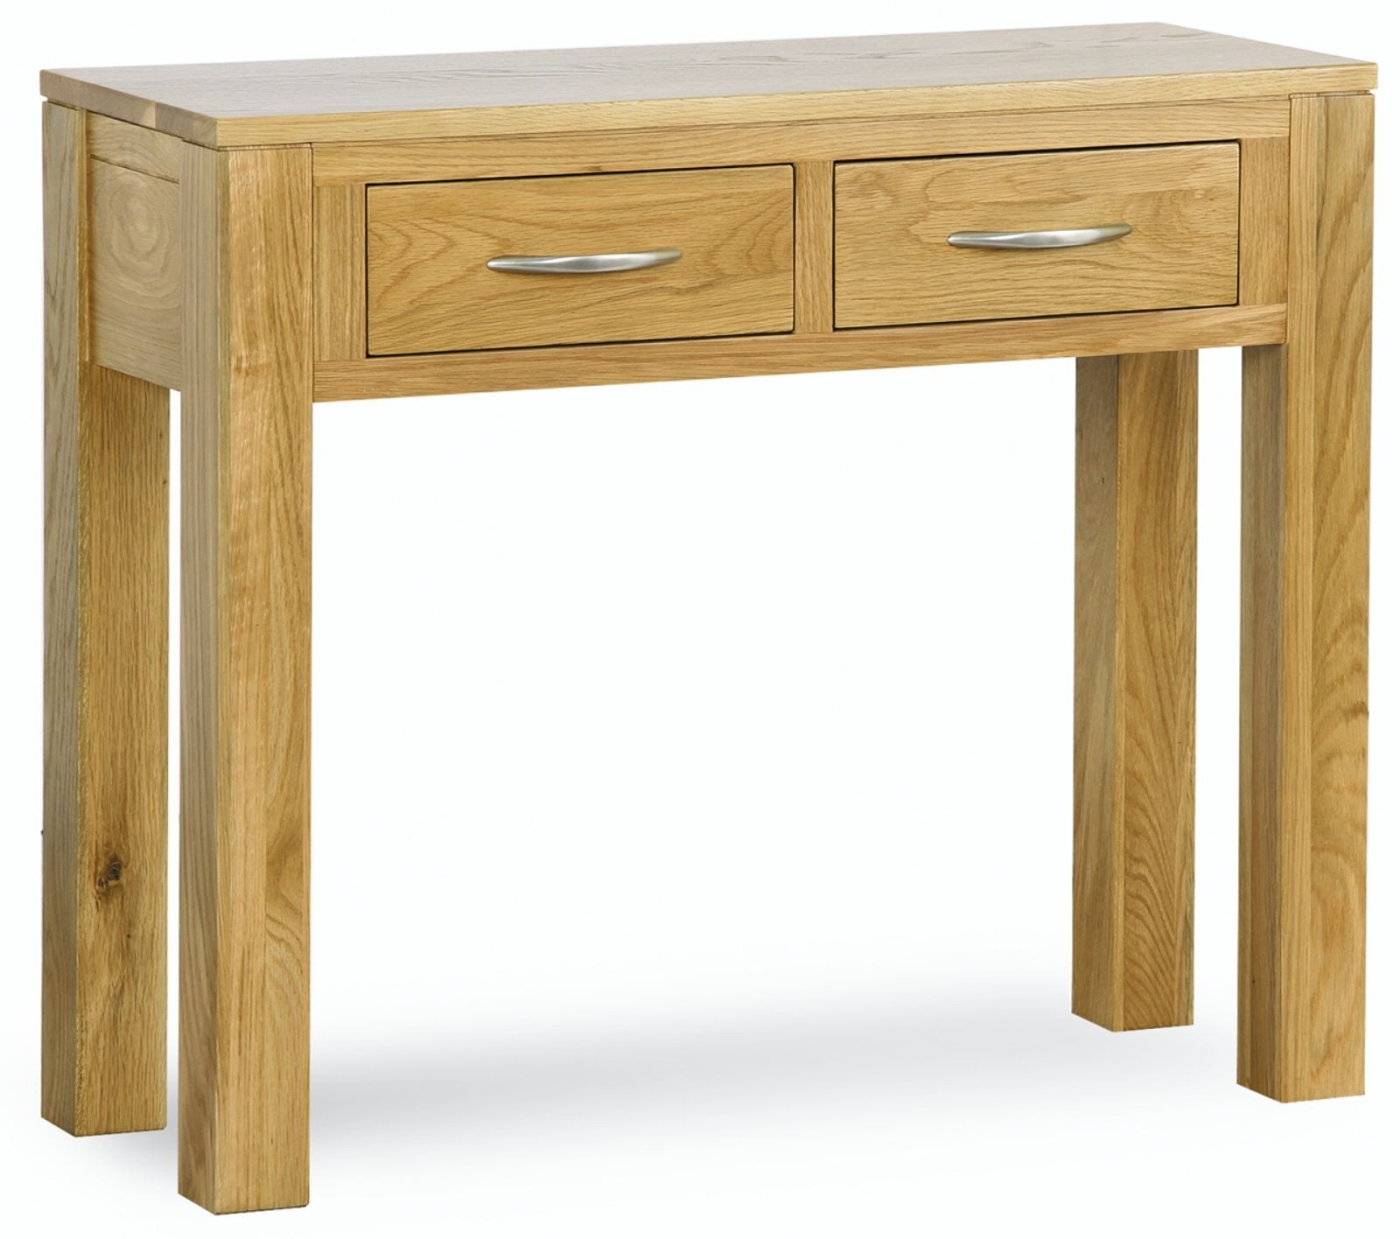 Cotswold solid oak living room hallway furniture two for Console hallway table furniture